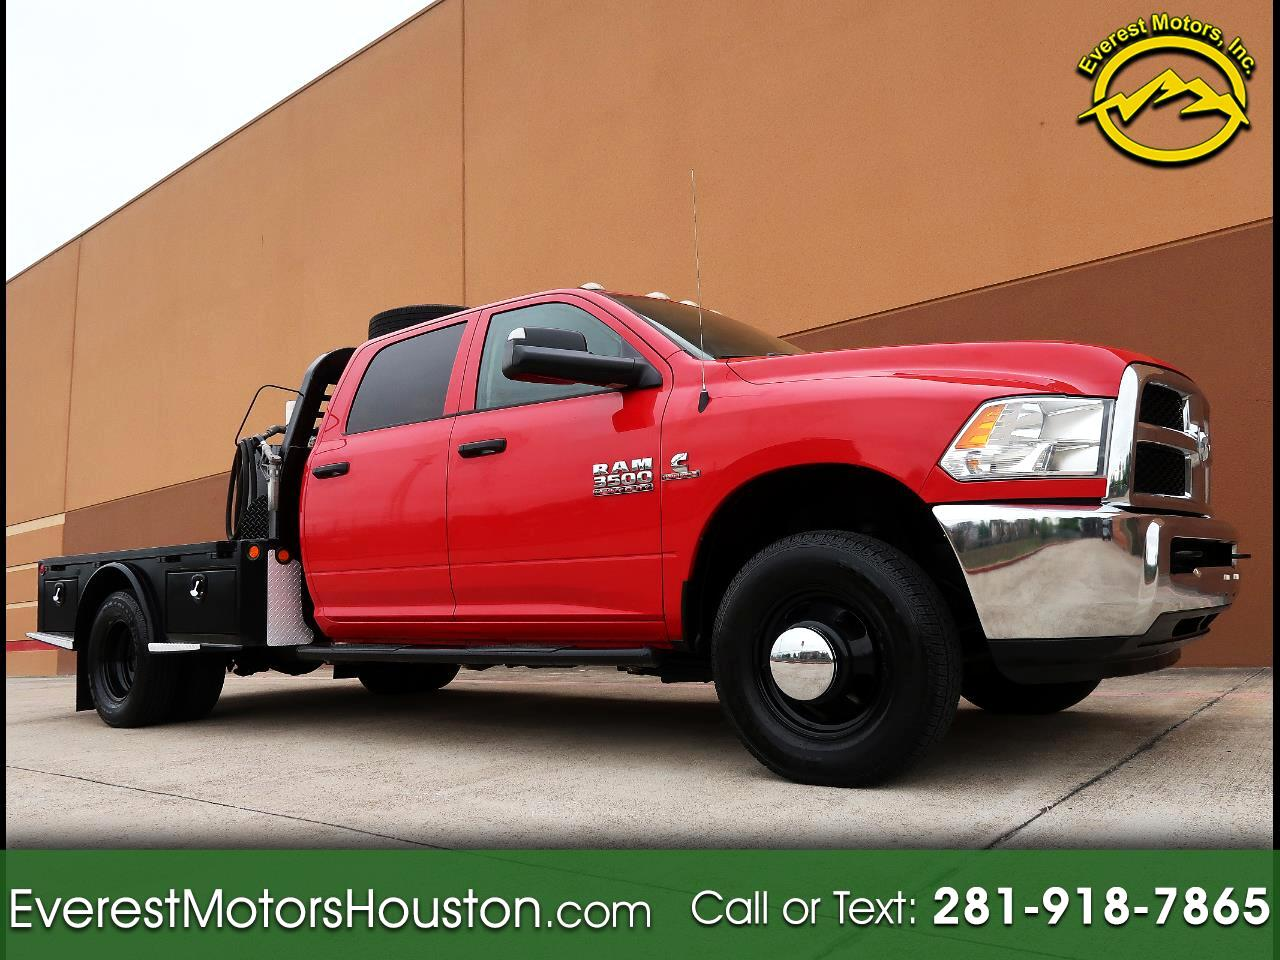 2015 Dodge Ram 3500 TRADESMAN CREW CHASSIS AND CAB 4WD DRW AISIN TRANS